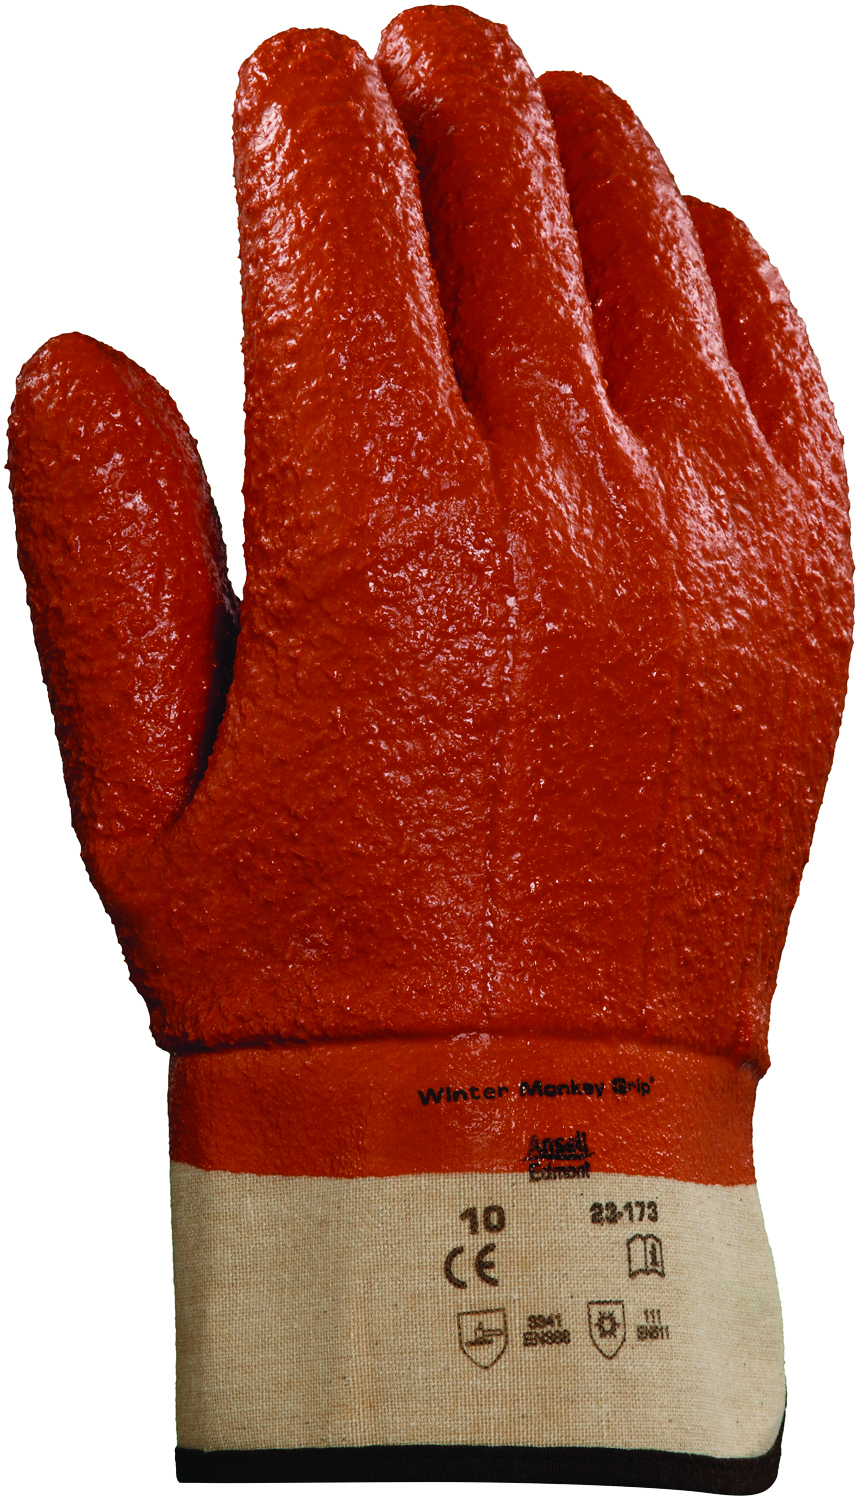 23-173 - Winter Monkey Grip® Gloves-Winter Monkey Grip®, Knitwrist Cuff Style-Size 10----UOM: 12/PK